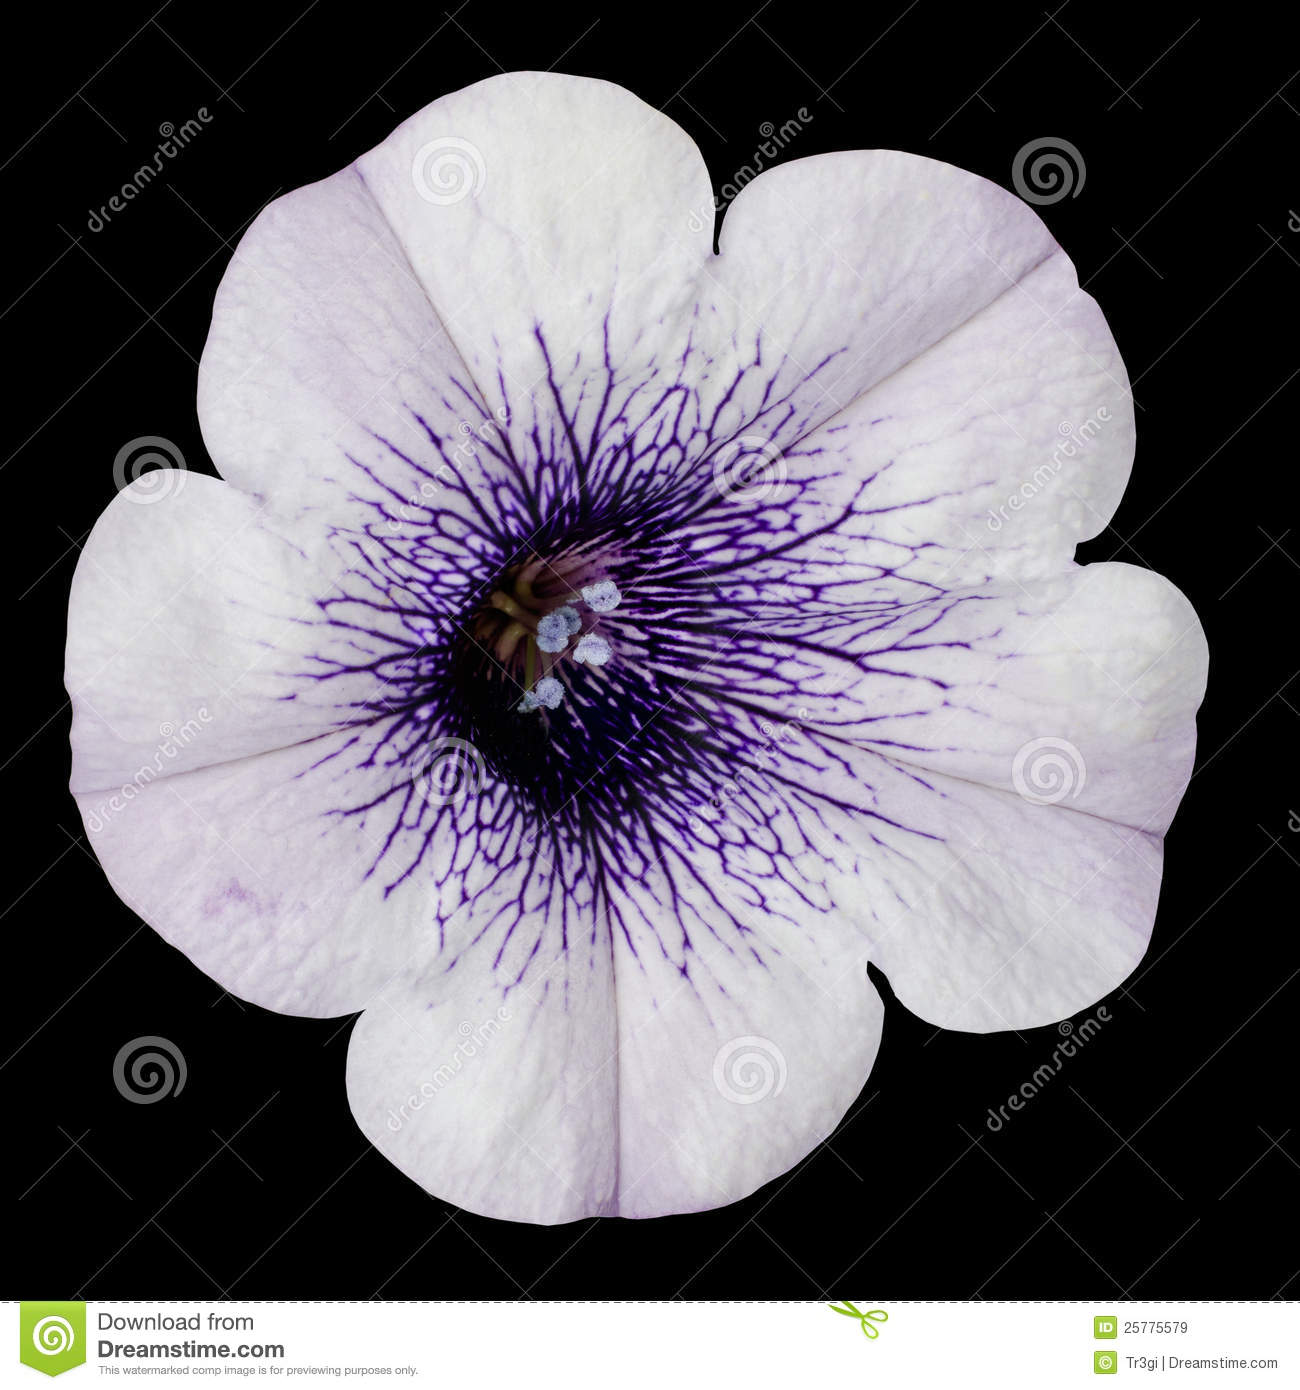 white flower with purple center  flower, Natural flower